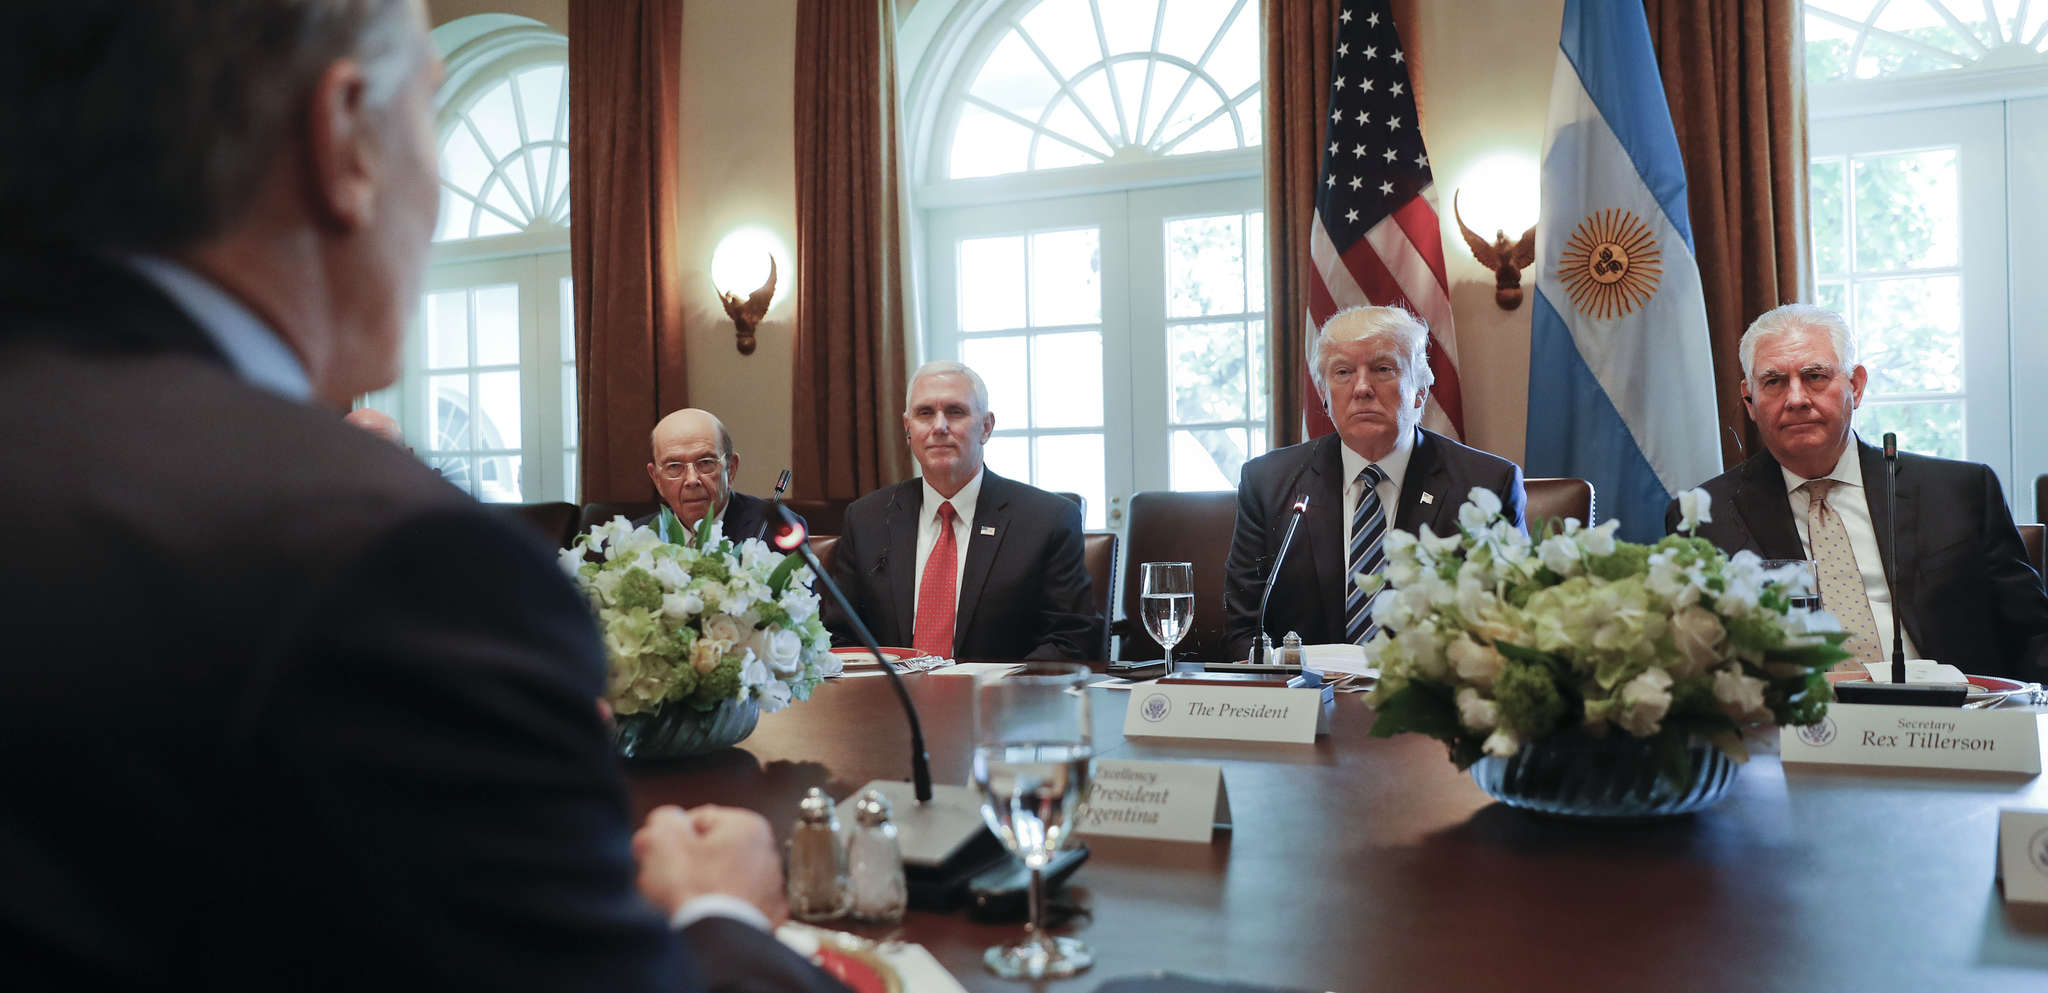 President Trump , flanked by Vice President Pence (left) and Secretary of State Rex Tillerson, listening to Argentina´s President Mauricio Macri on Thursday. At far left is Commerce Secretary Wilbur Ross. AP